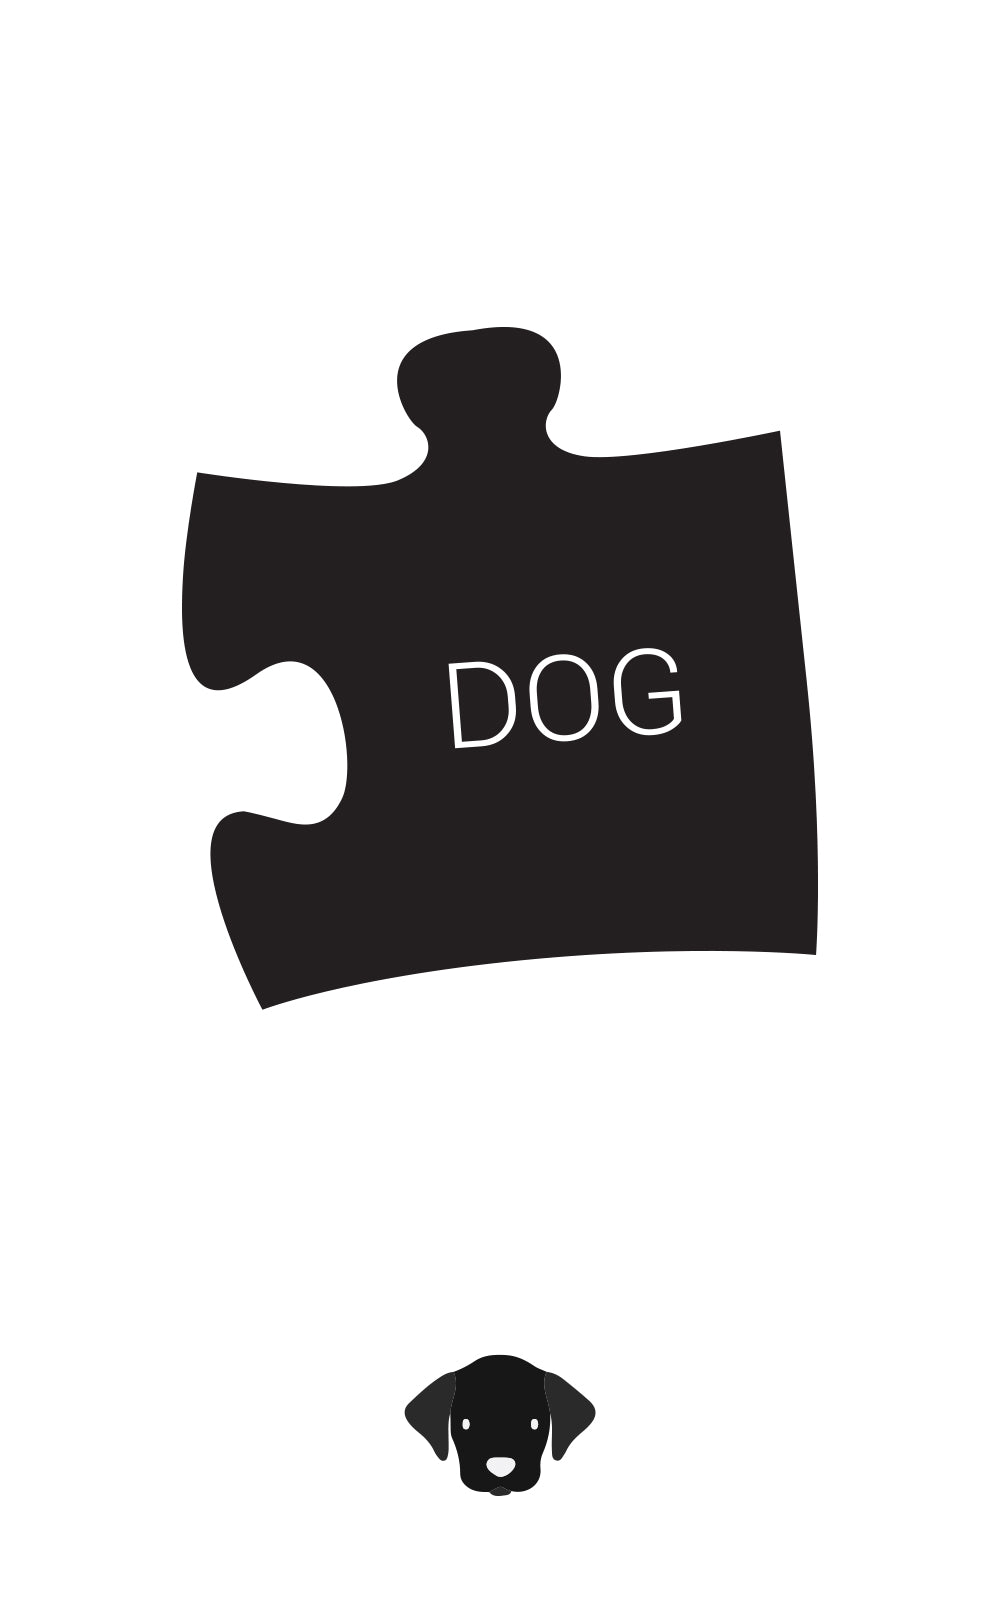 Black puzzle piece with 'dog' written on it